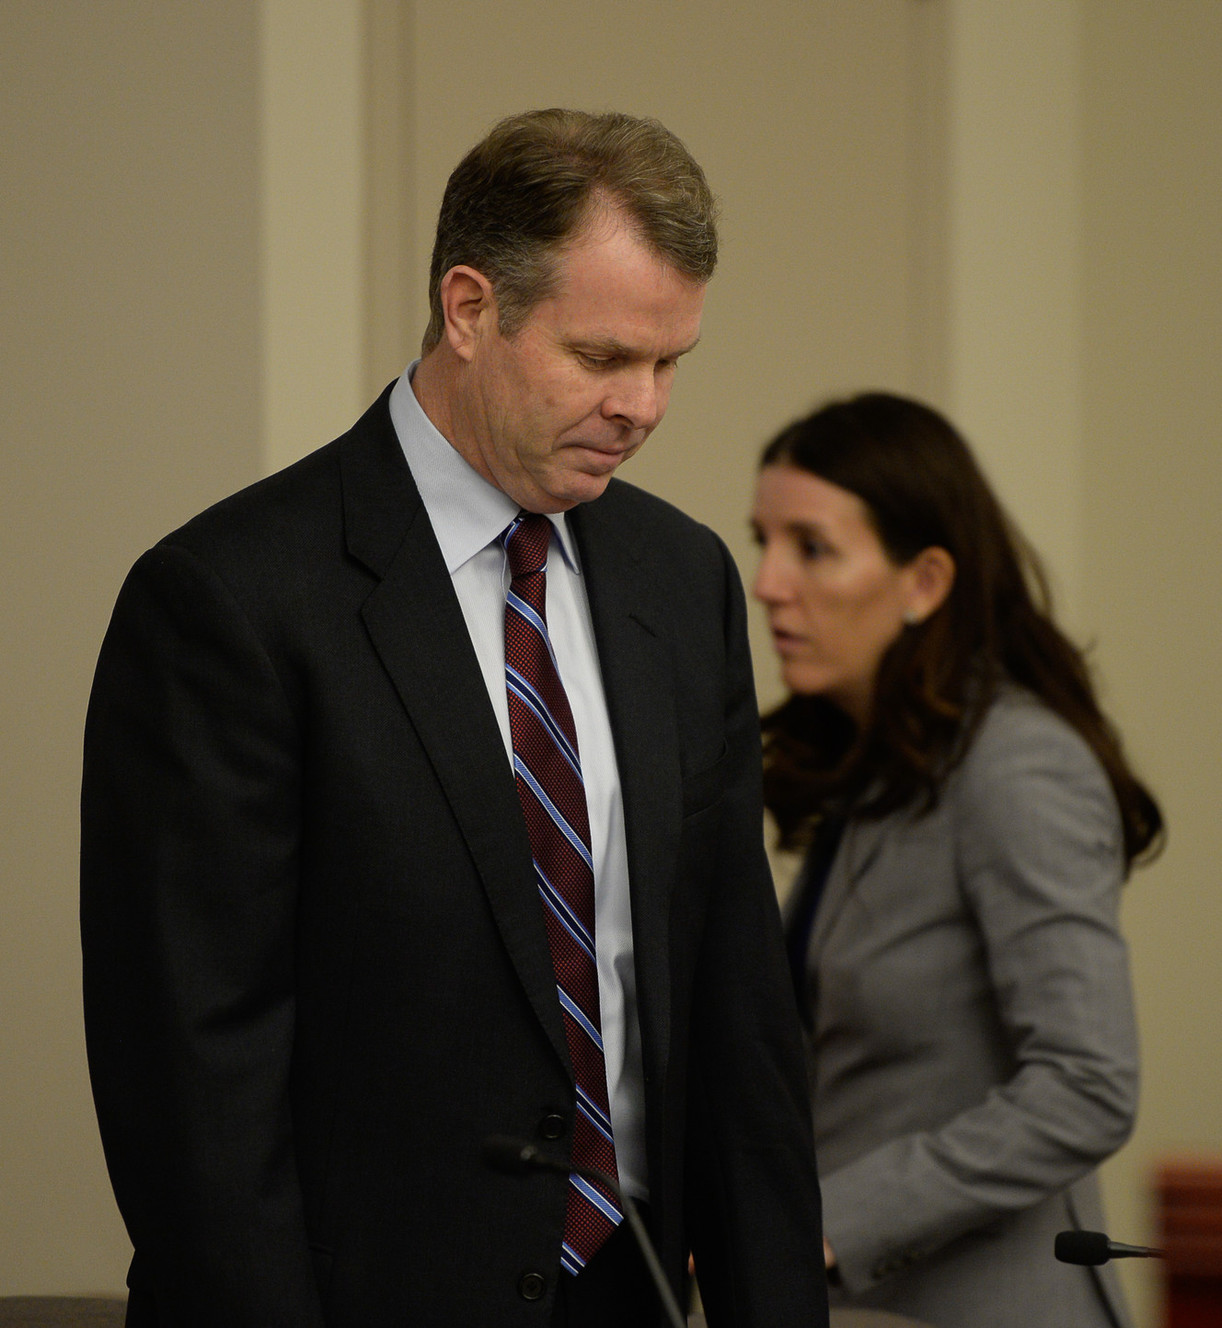 Ex A.G. John Swallow claims investigators lied about email searches